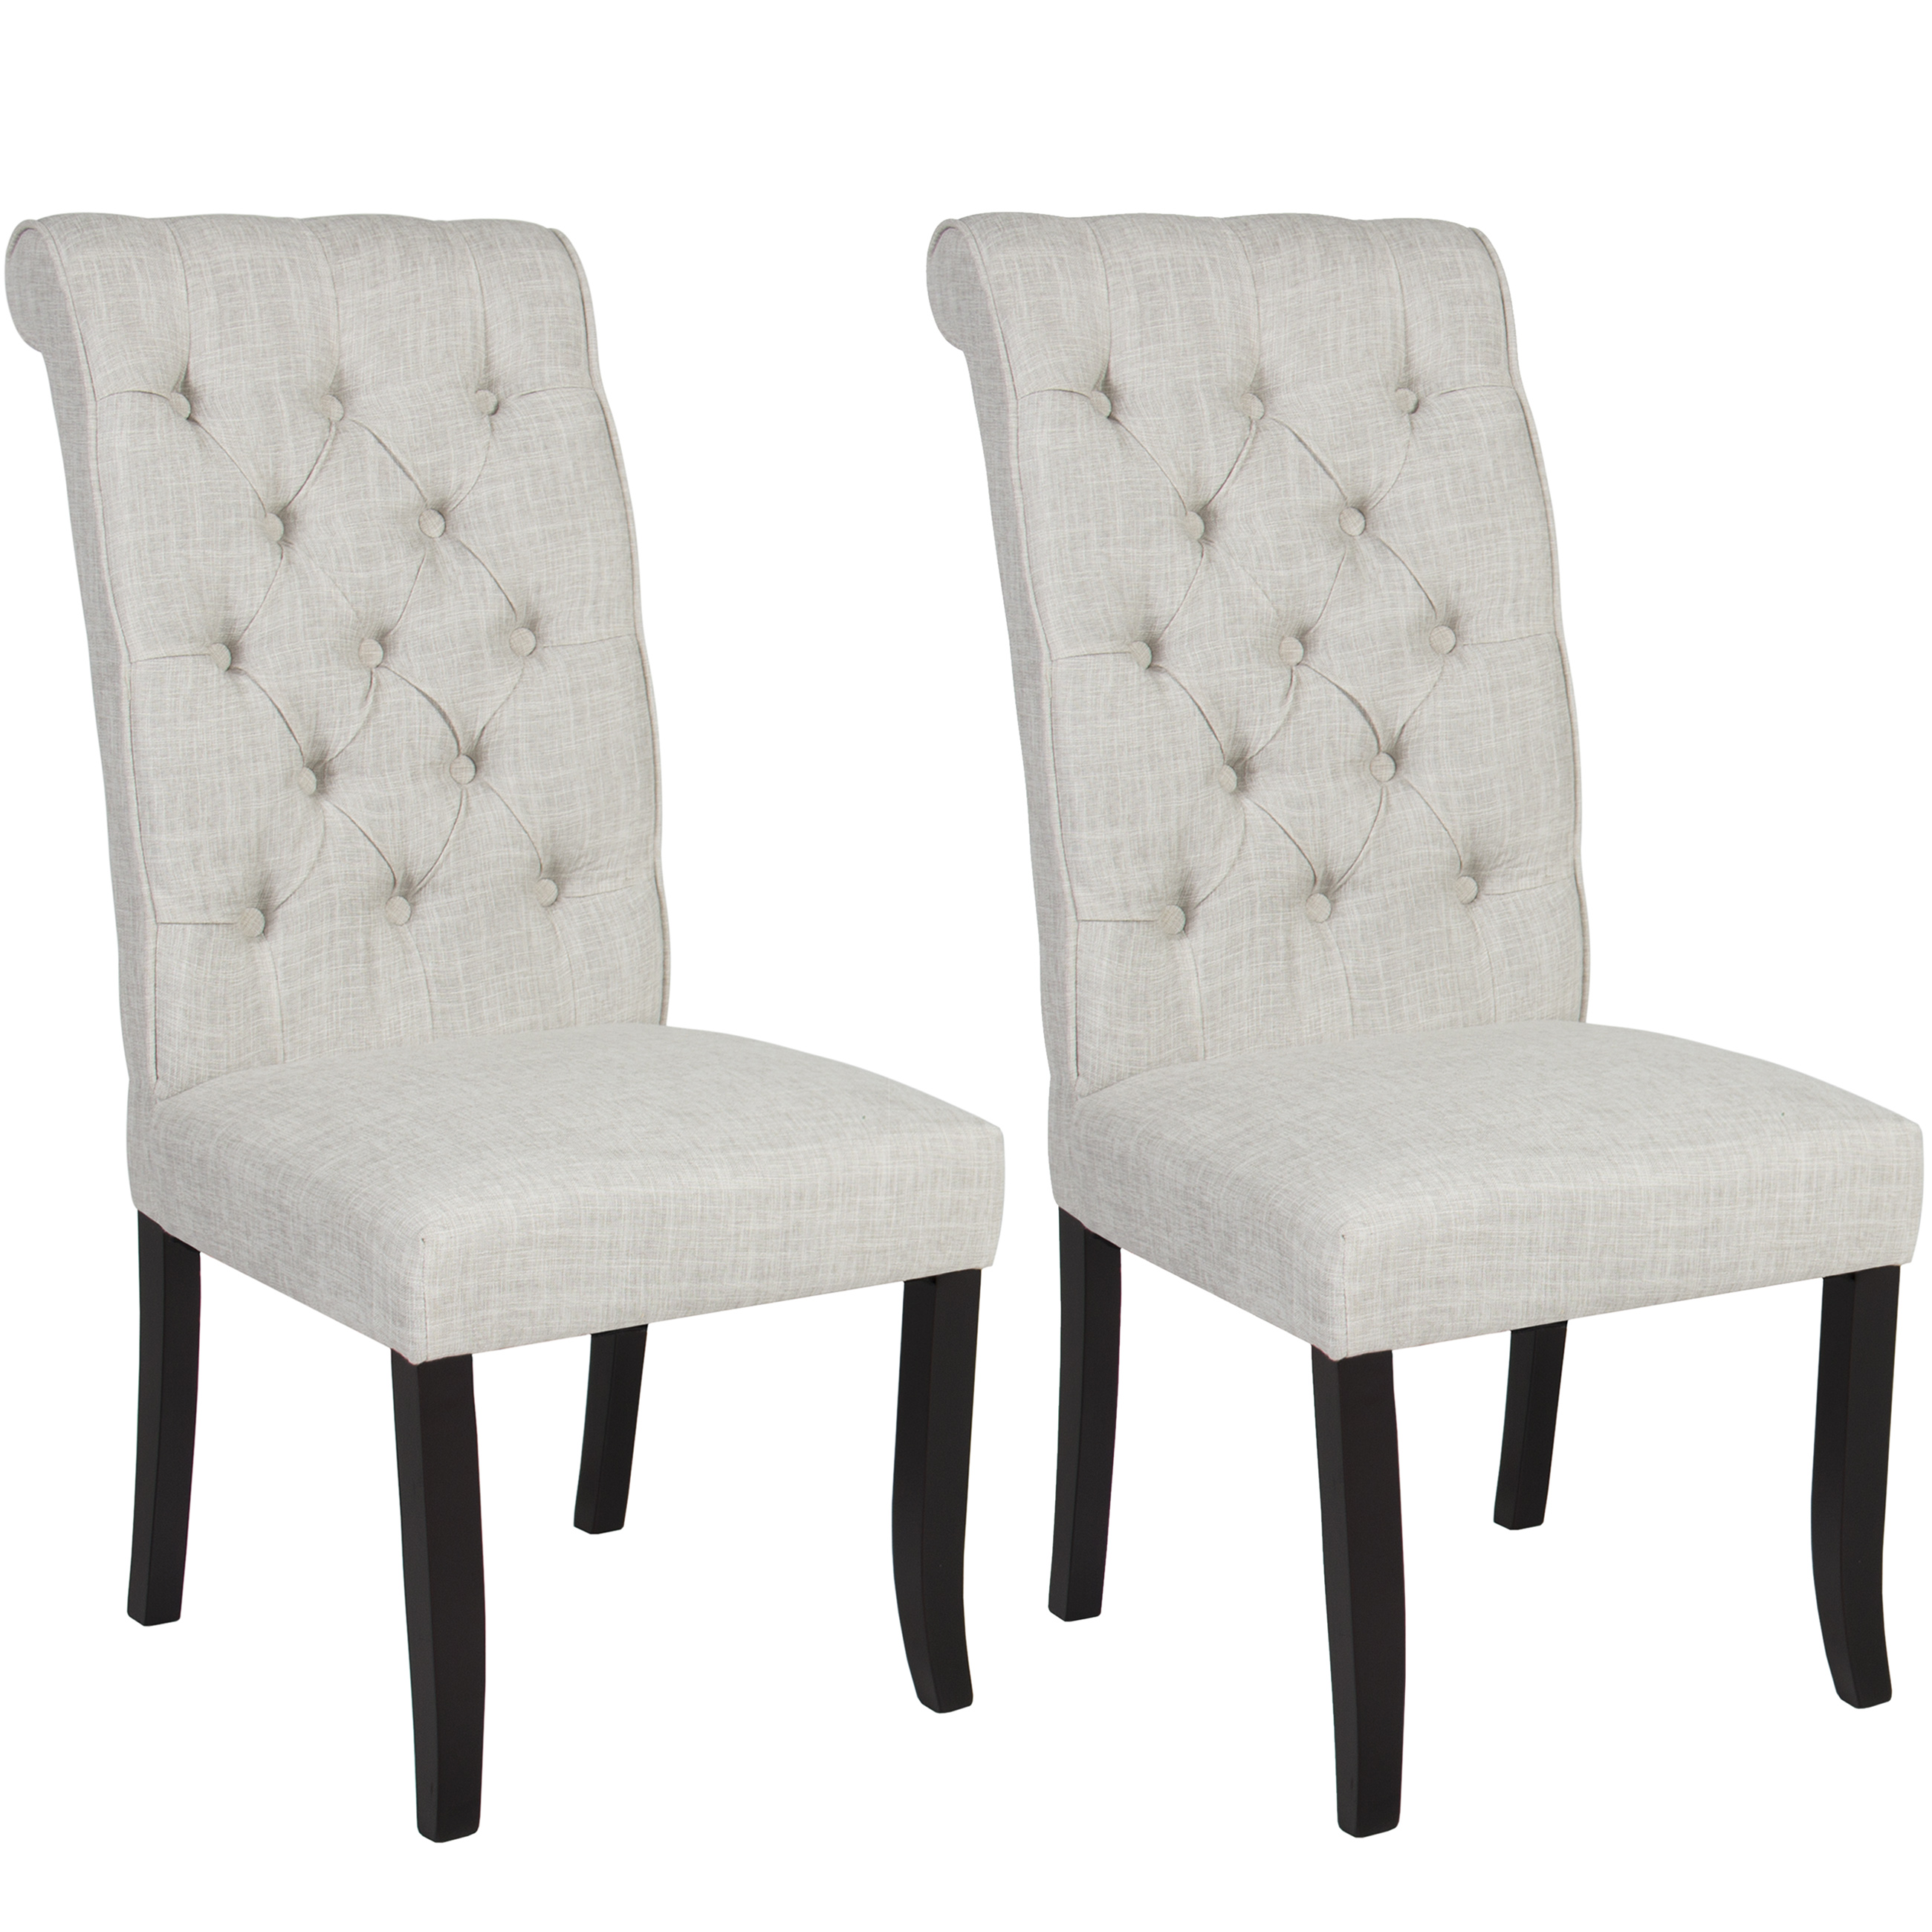 Best Choice Products Furniture Set Of 2 Tufted Parsons Dining Chair Set Modern Wood Linen Side Chair (White) by